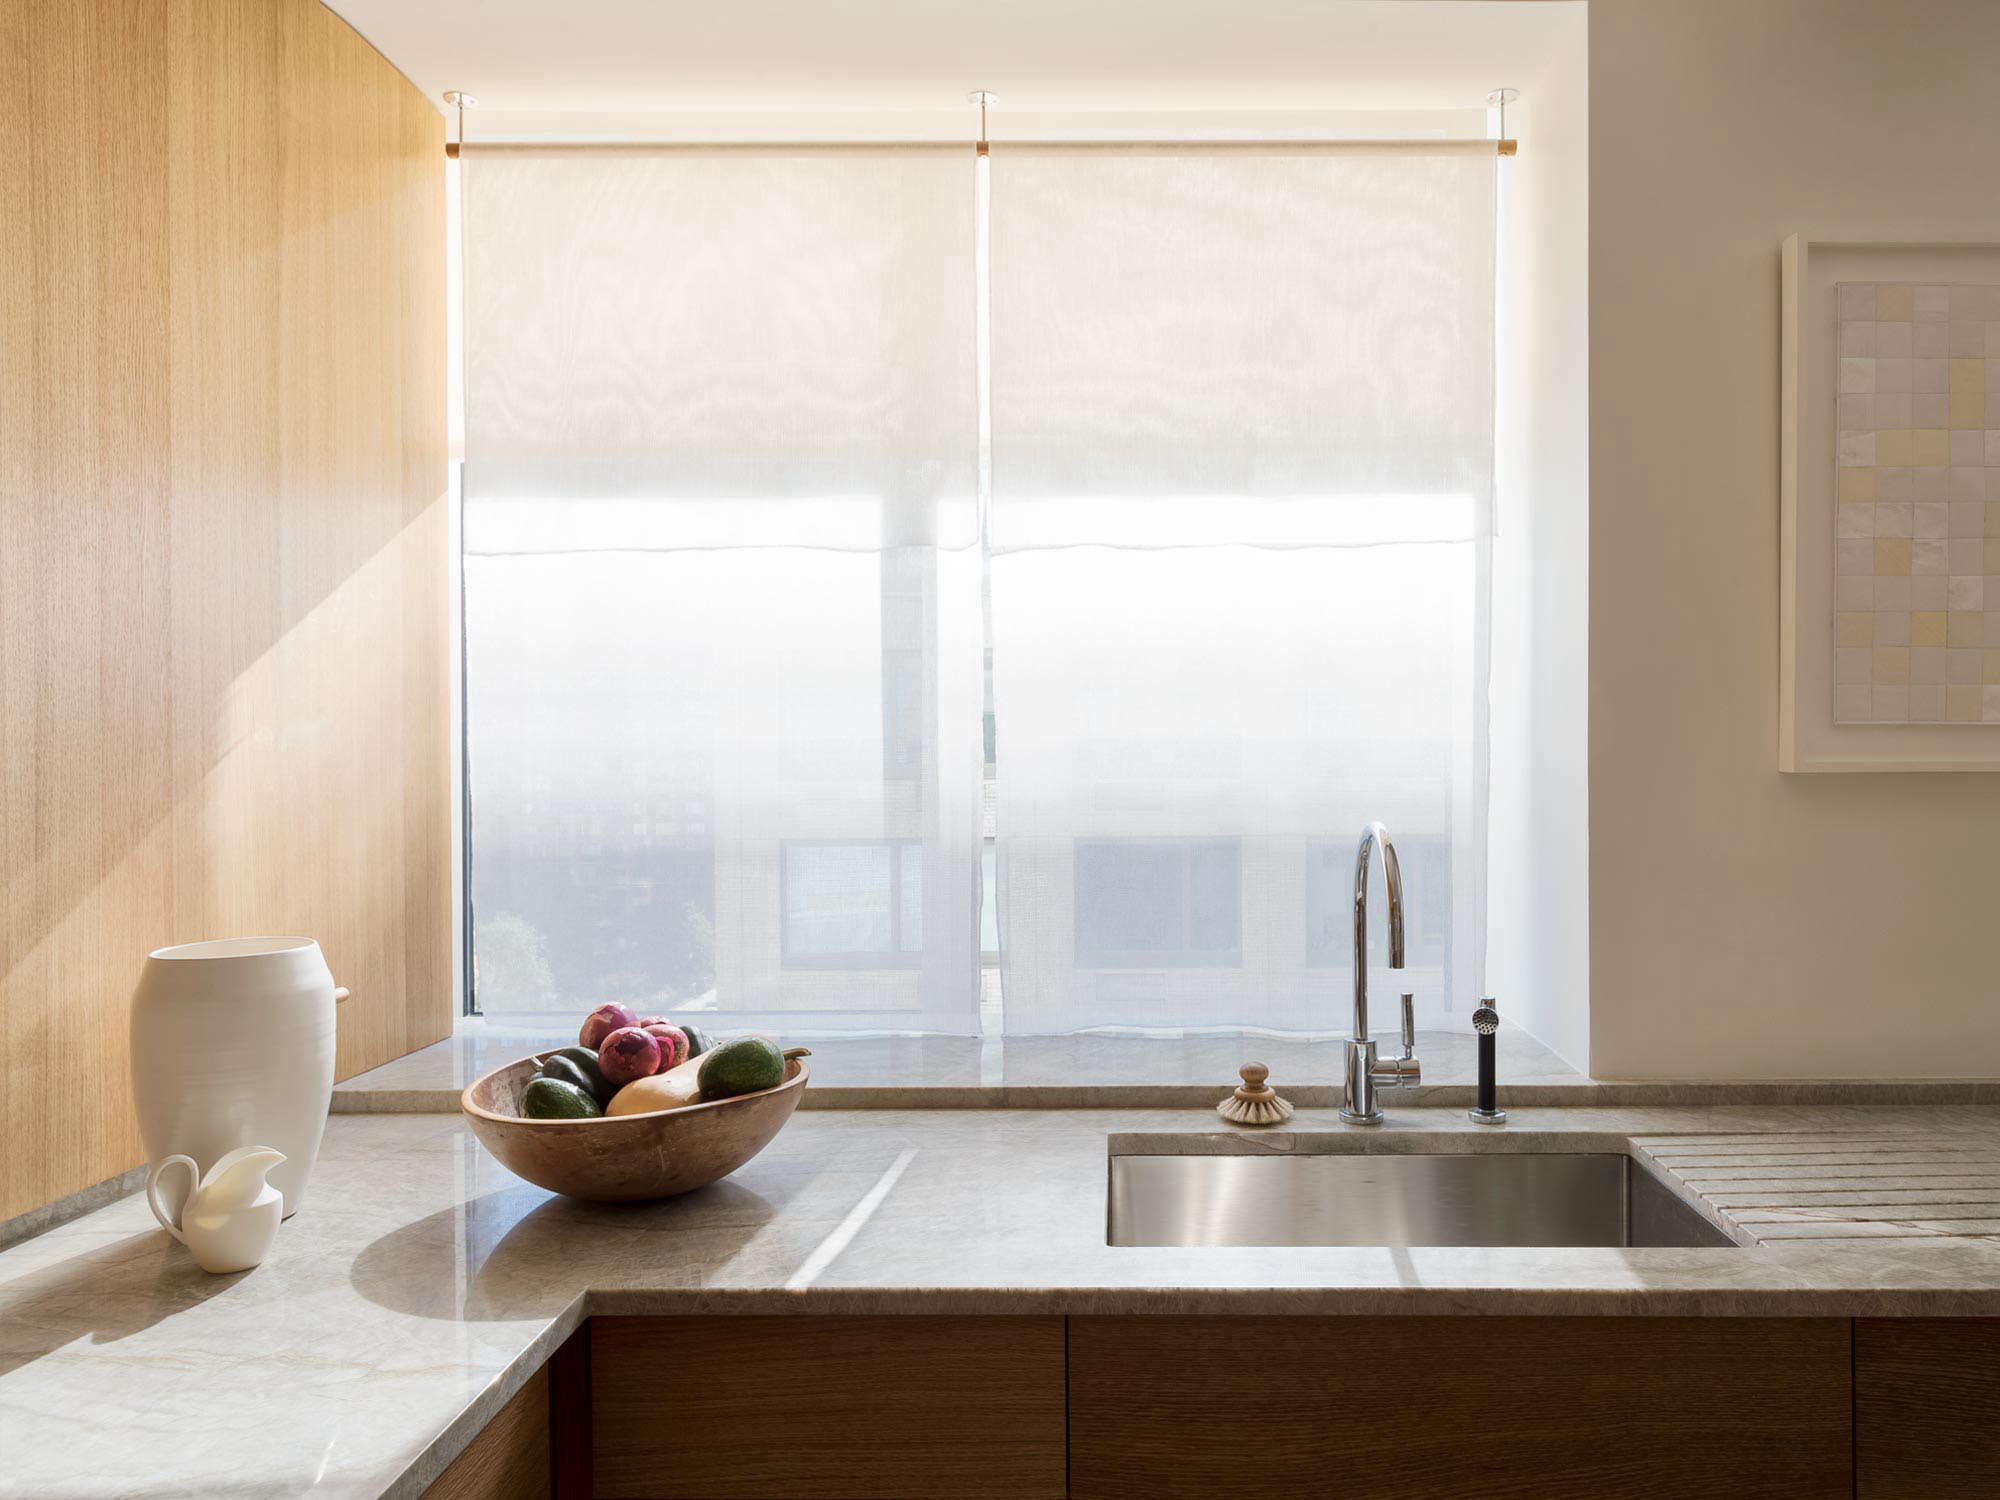 Translucent curtain panel woven by Japanese artist Hiroko Takeda in an NYC kitchen designed by Workstead